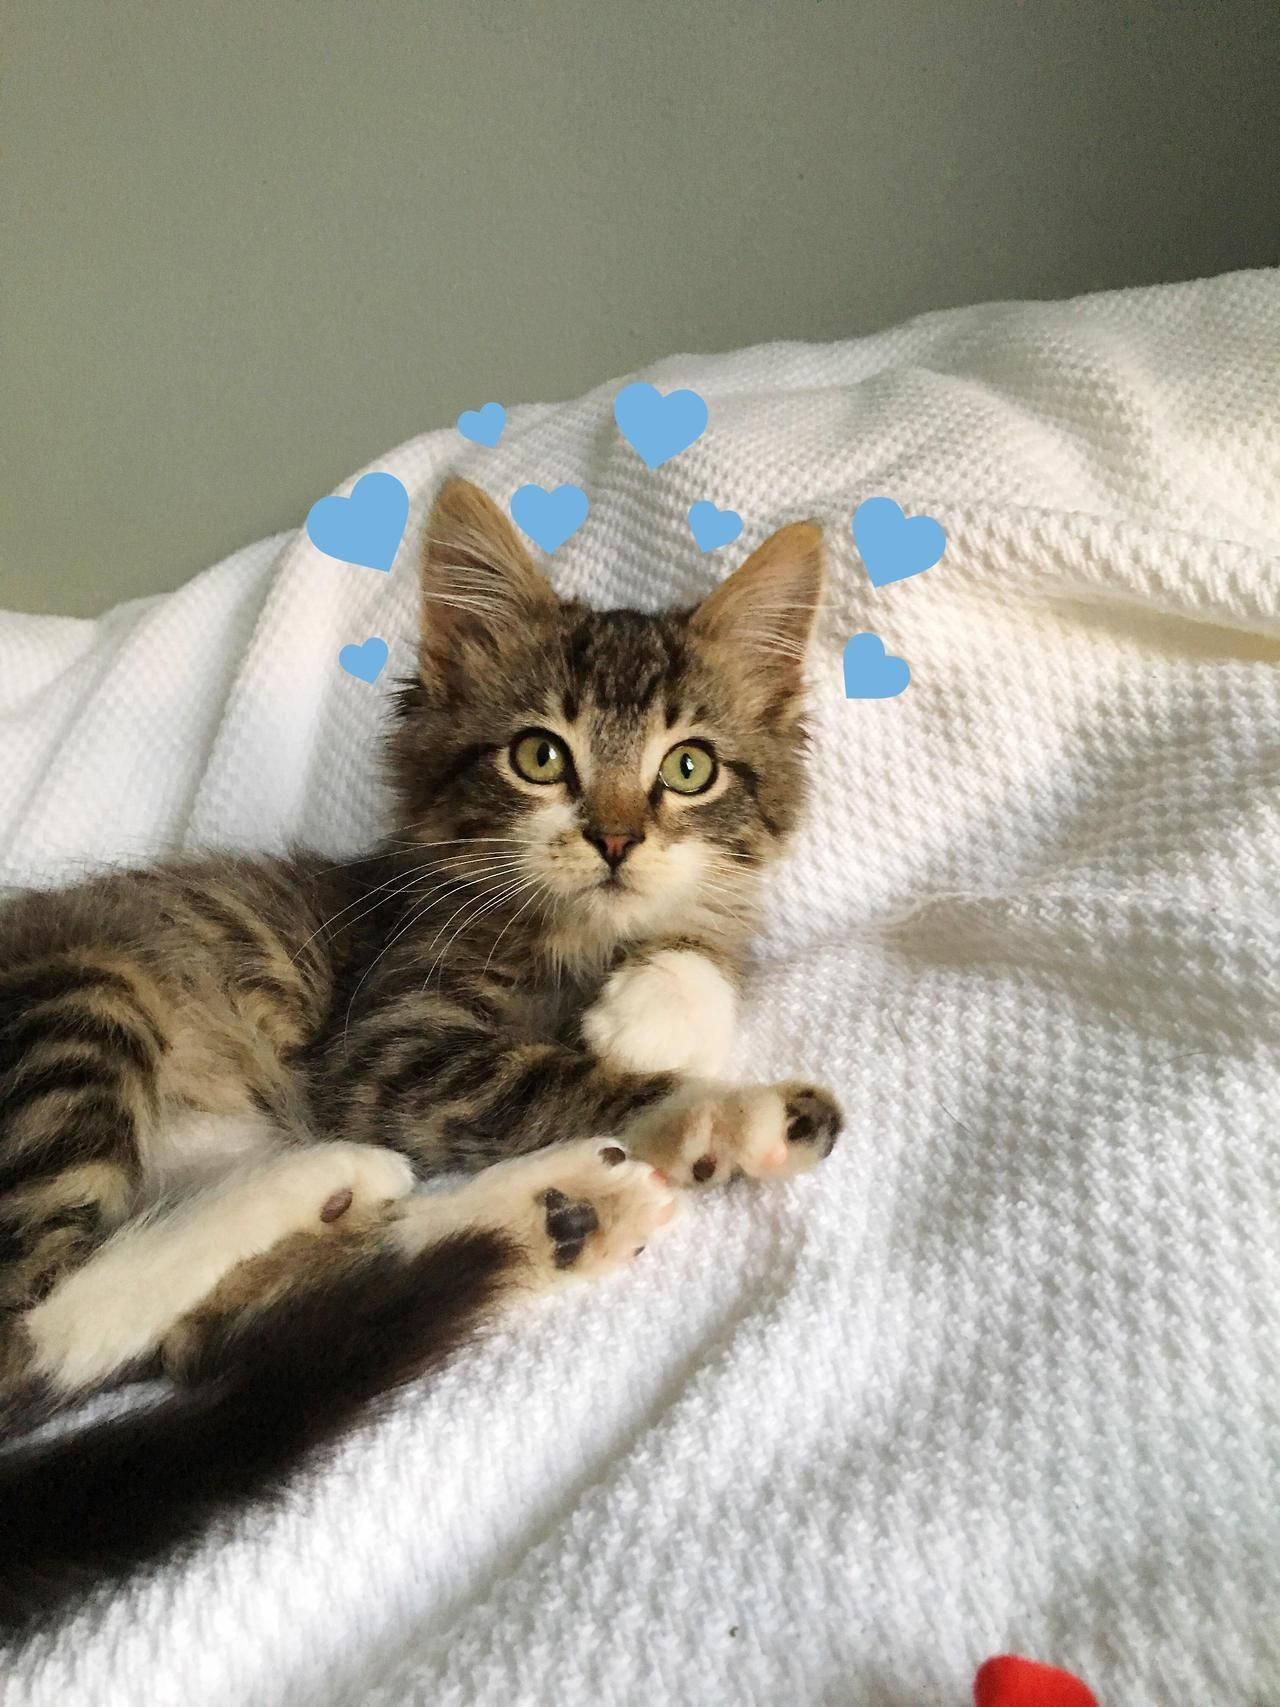 We Ended New Years Day With Adopting Our New Son 3 Month Old Theo By Zaofools Cats Kitten Catsonweb Cute Adorable Funny Sleep Cute Baby Animals Cats Cute Cats